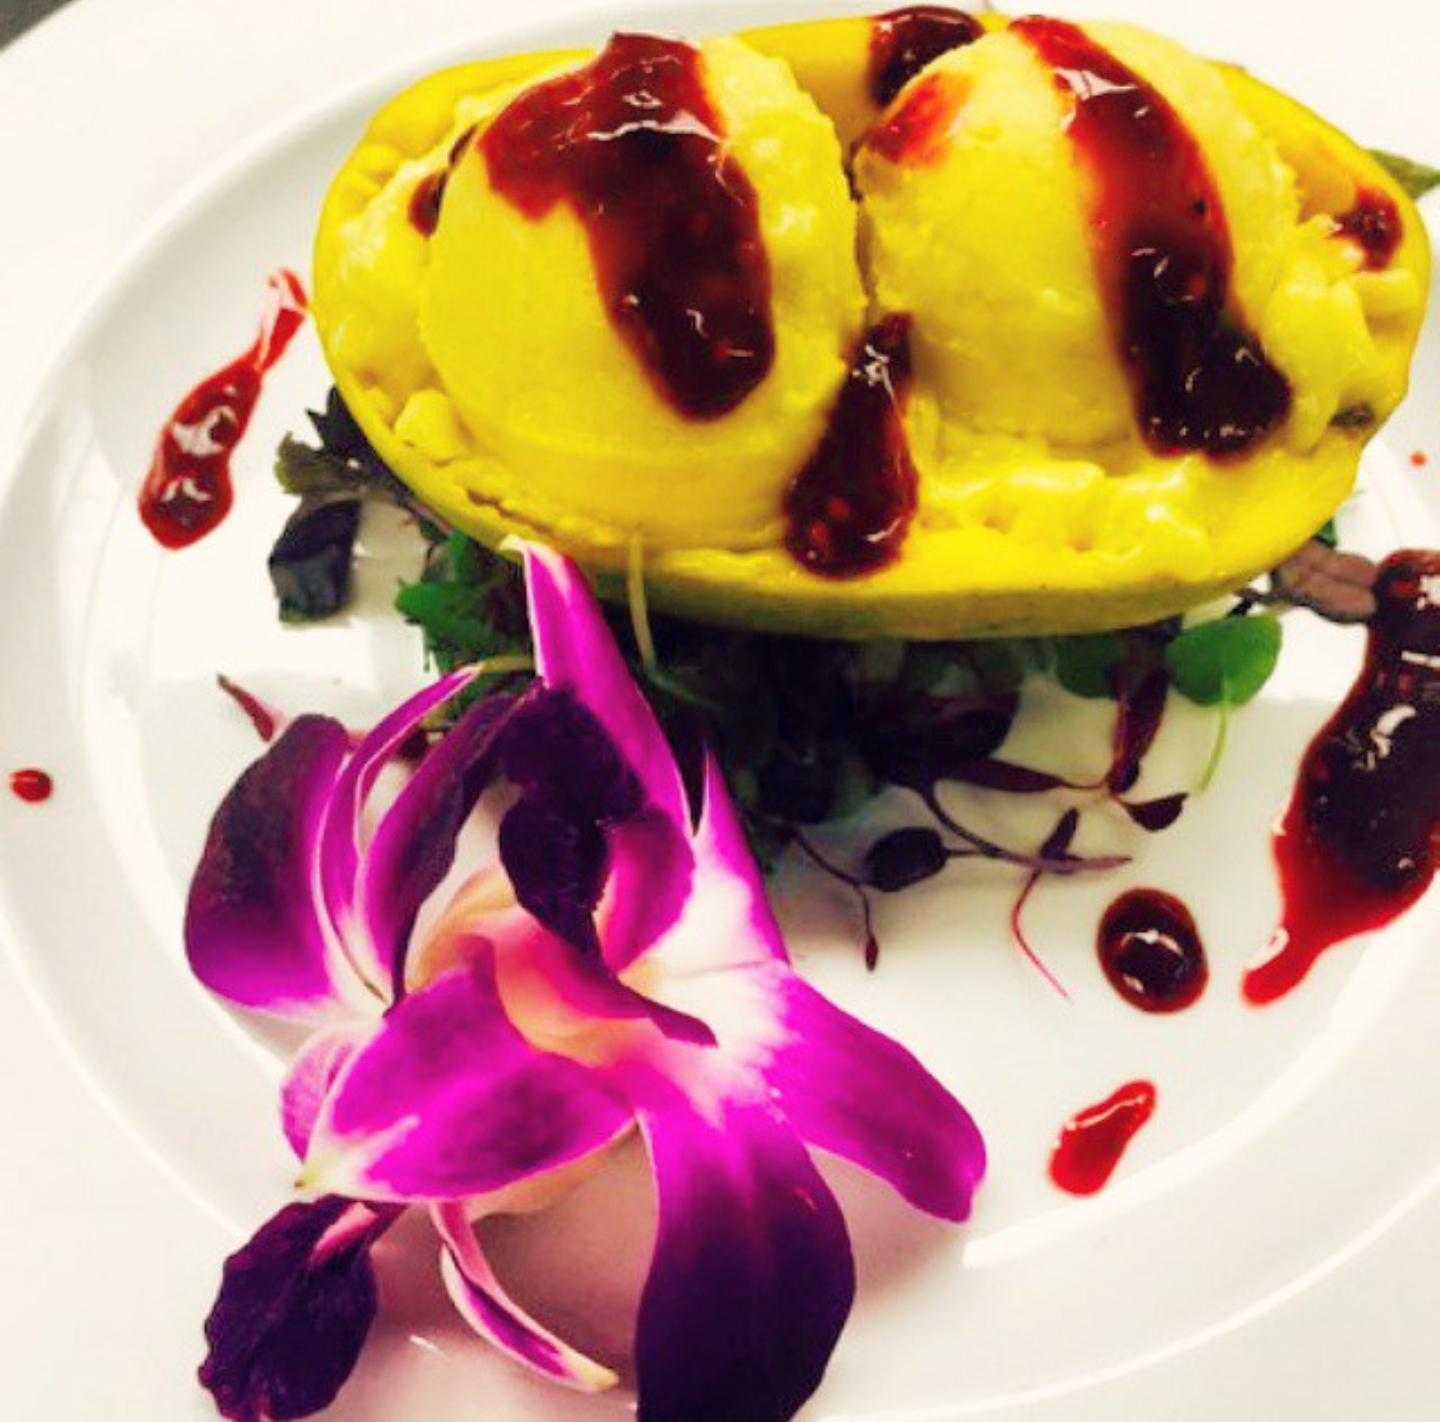 Mango Sorbet with Raspberry Coulis